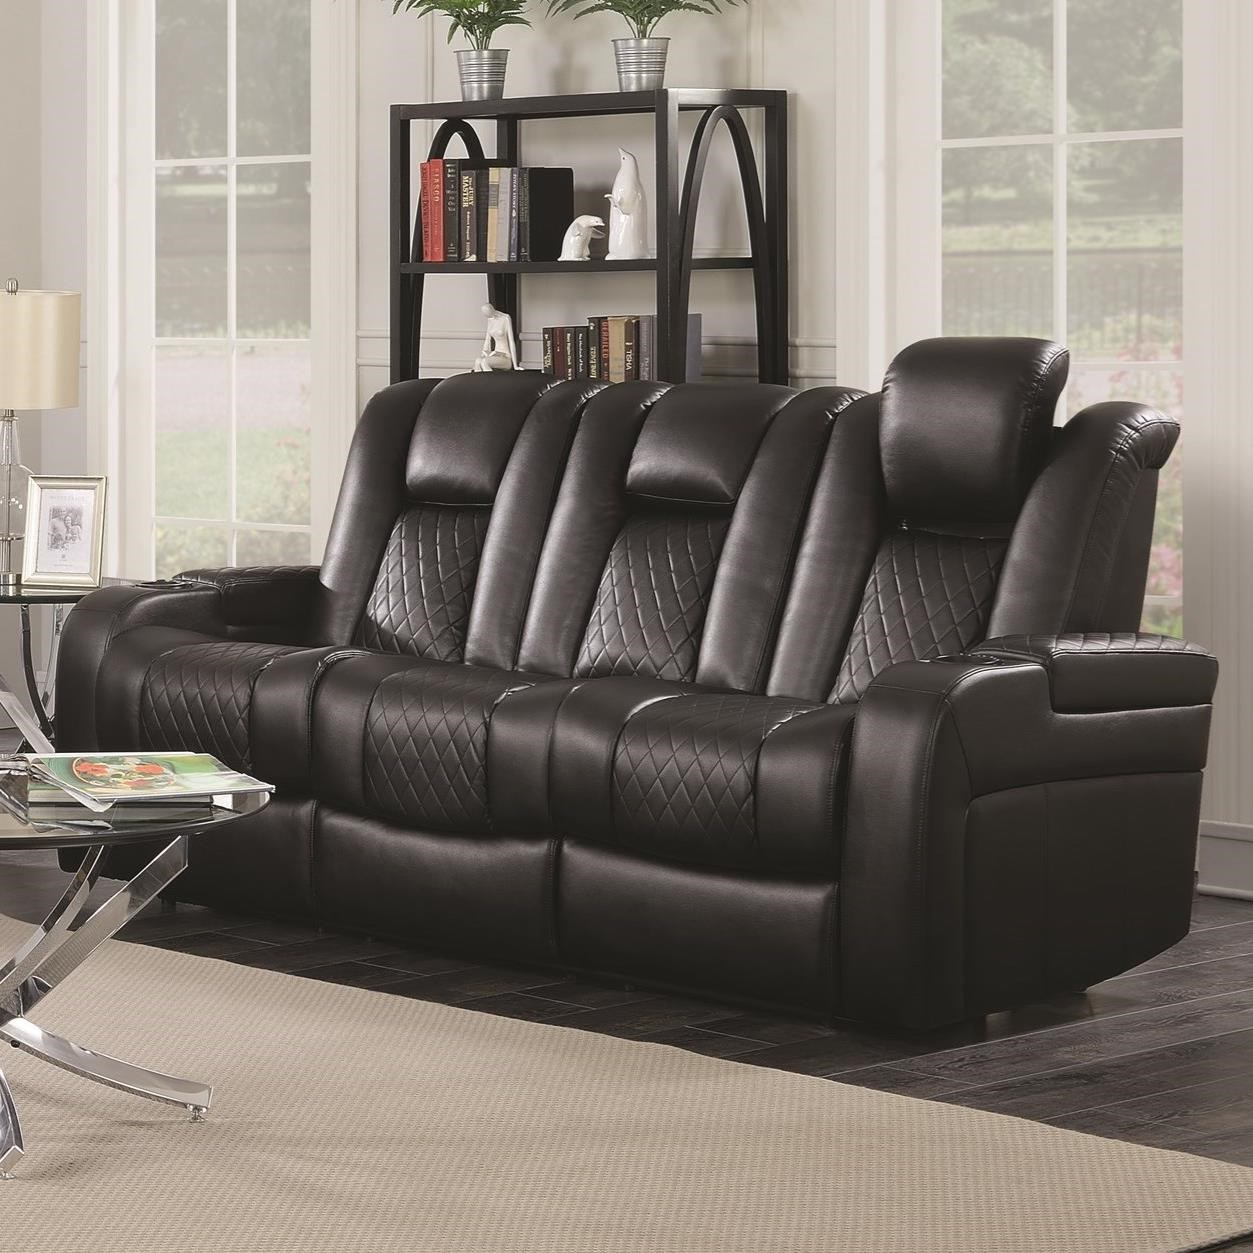 Coaster Delangelo Casual Power Reclining Sofa With Cup